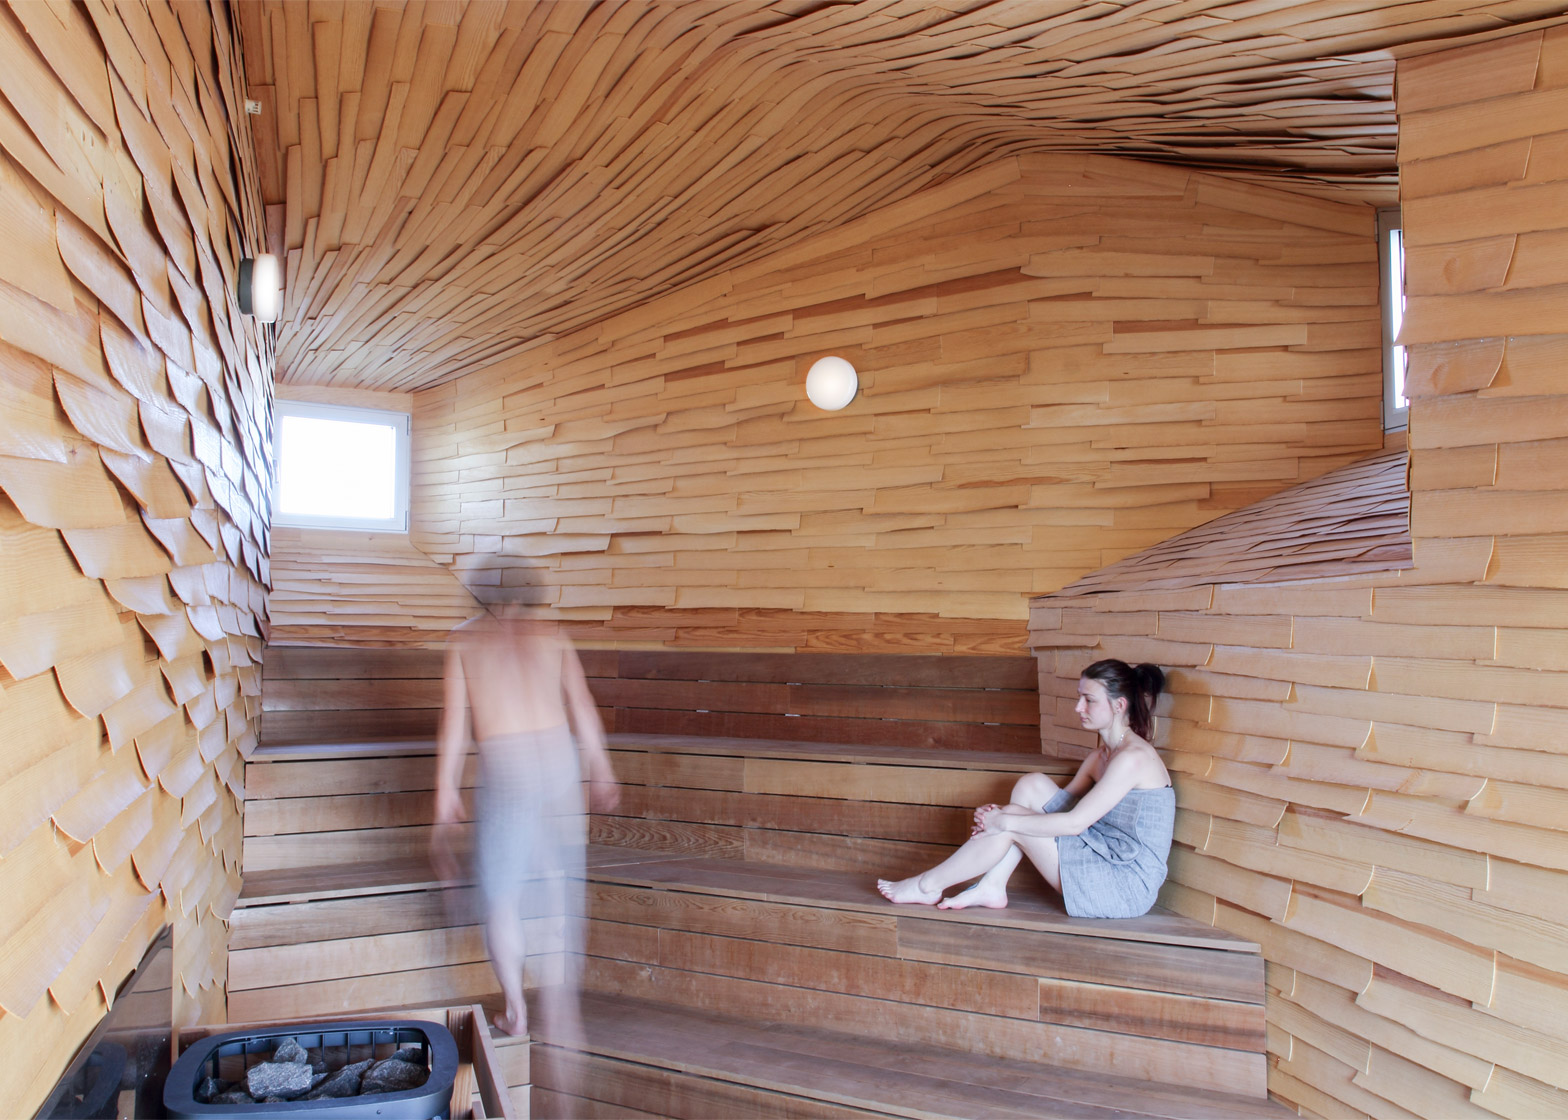 Gothenburg sauna by Raumlabor